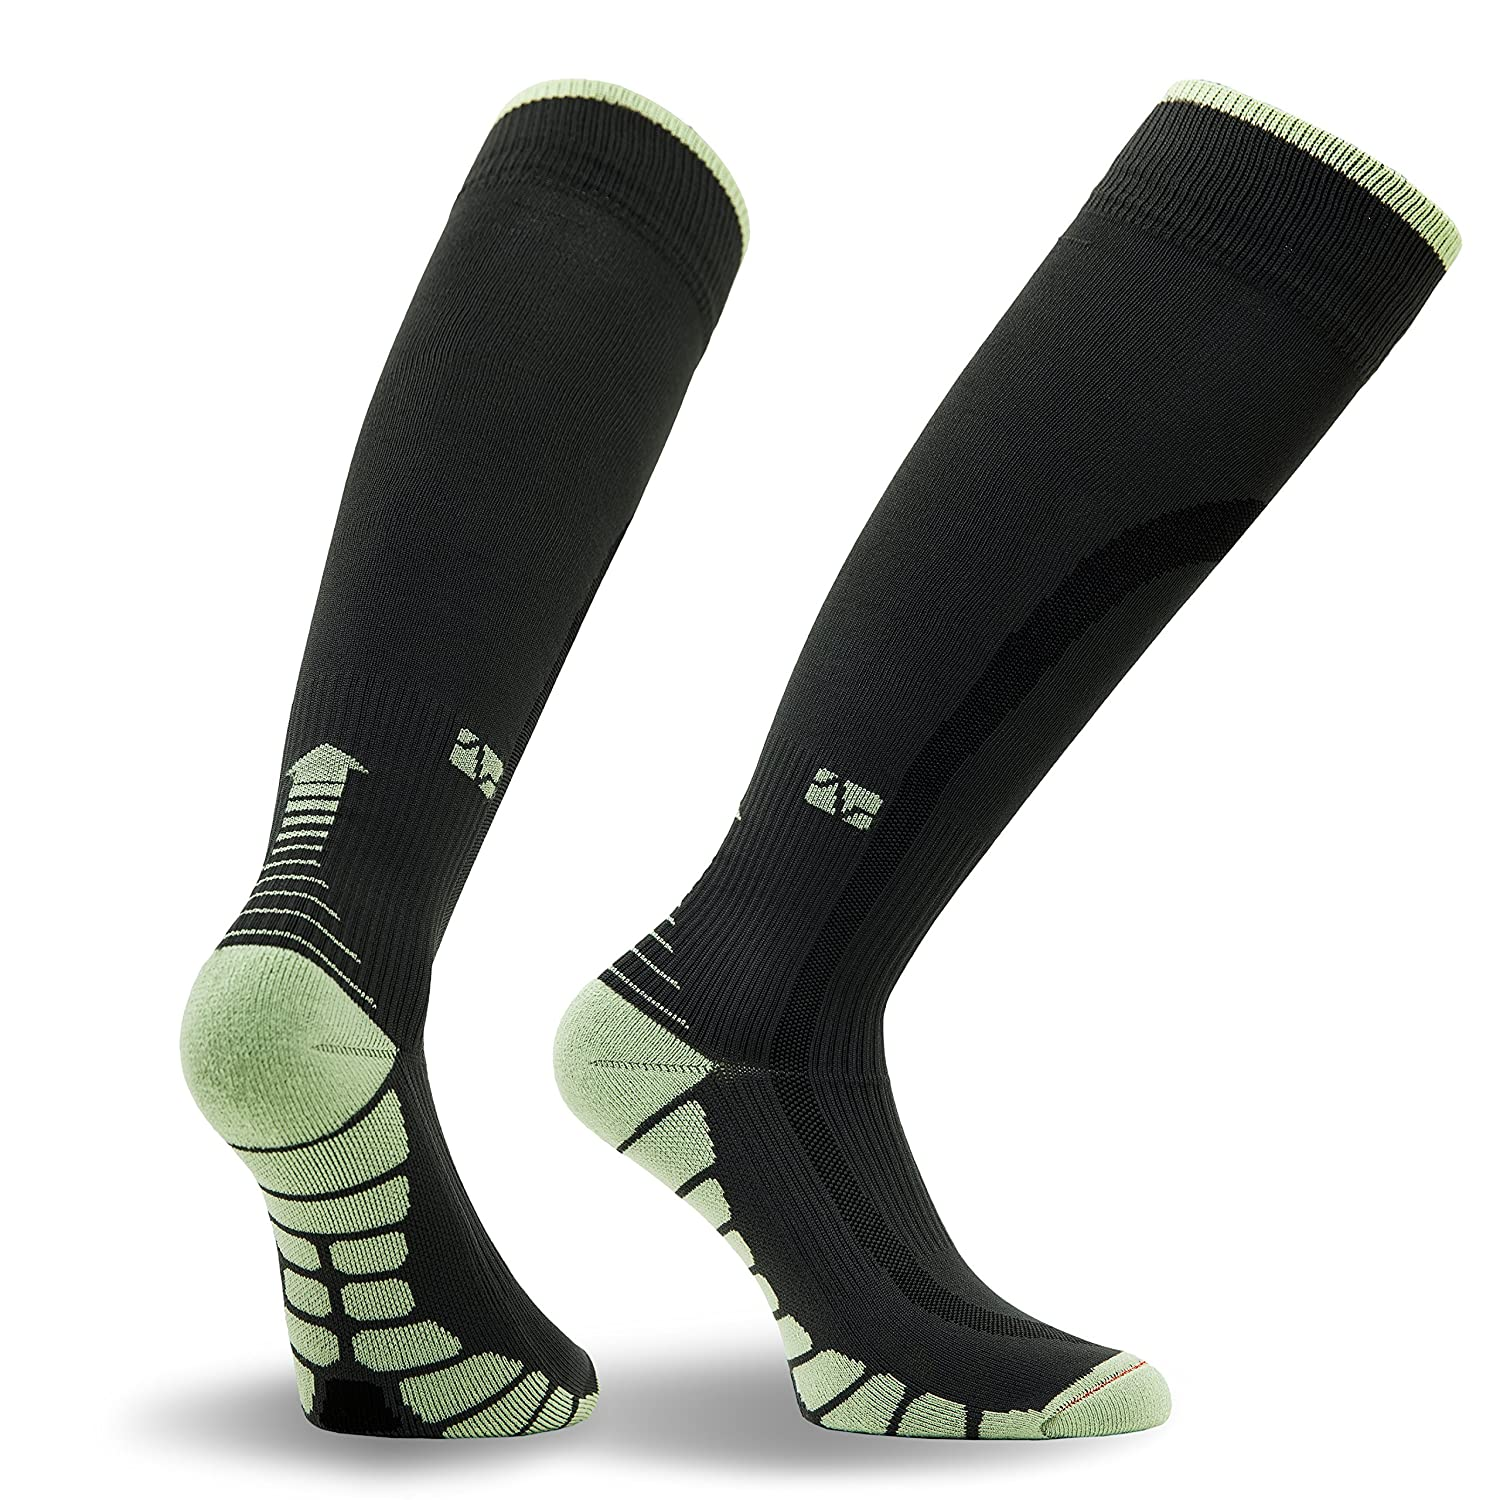 VT1211  Patented Graduated Compression Socks Carbon Series Vitalsox Italy One Pair VT1211-P